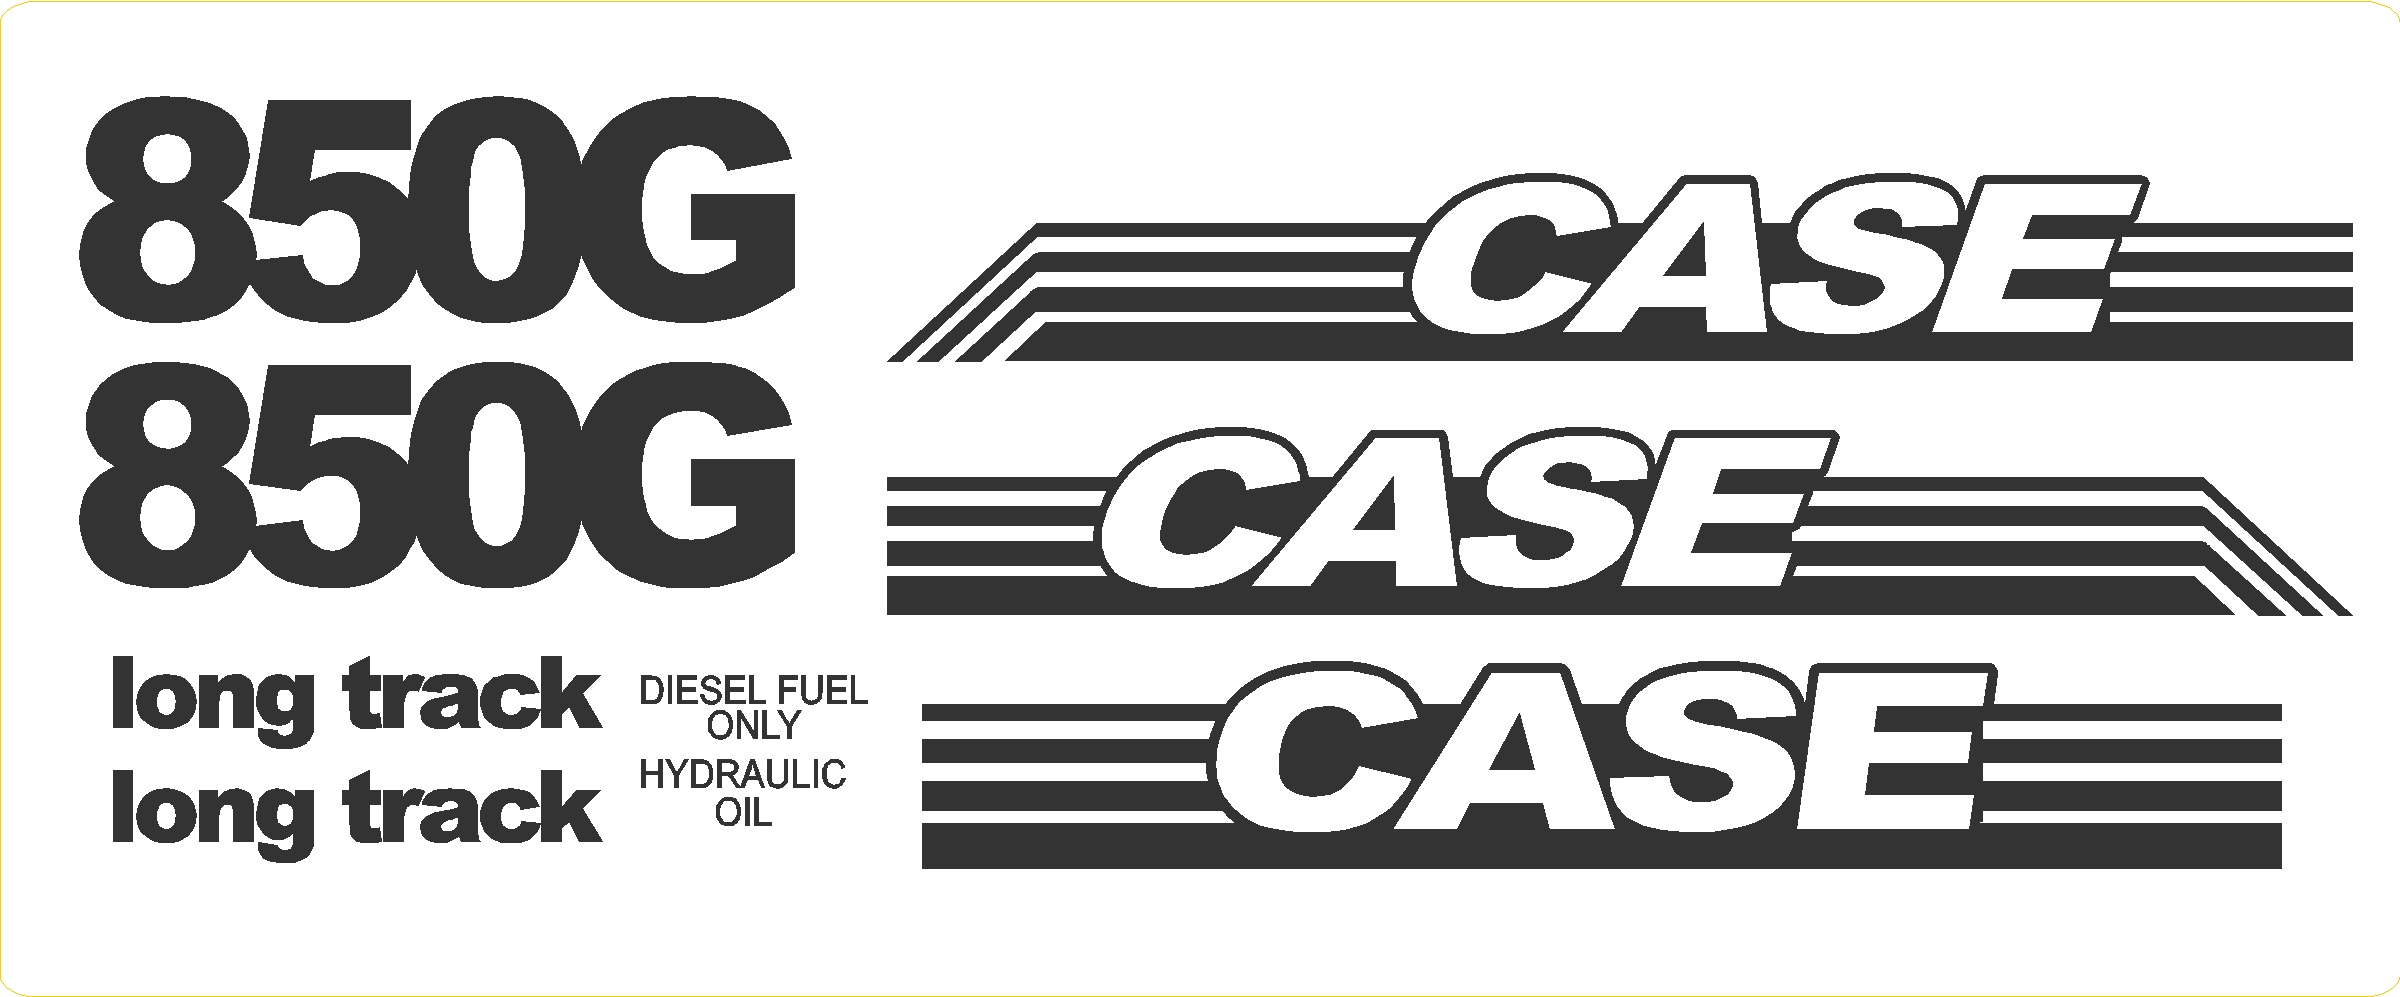 7250 Case Decal Kits : Case g long track new decal kit